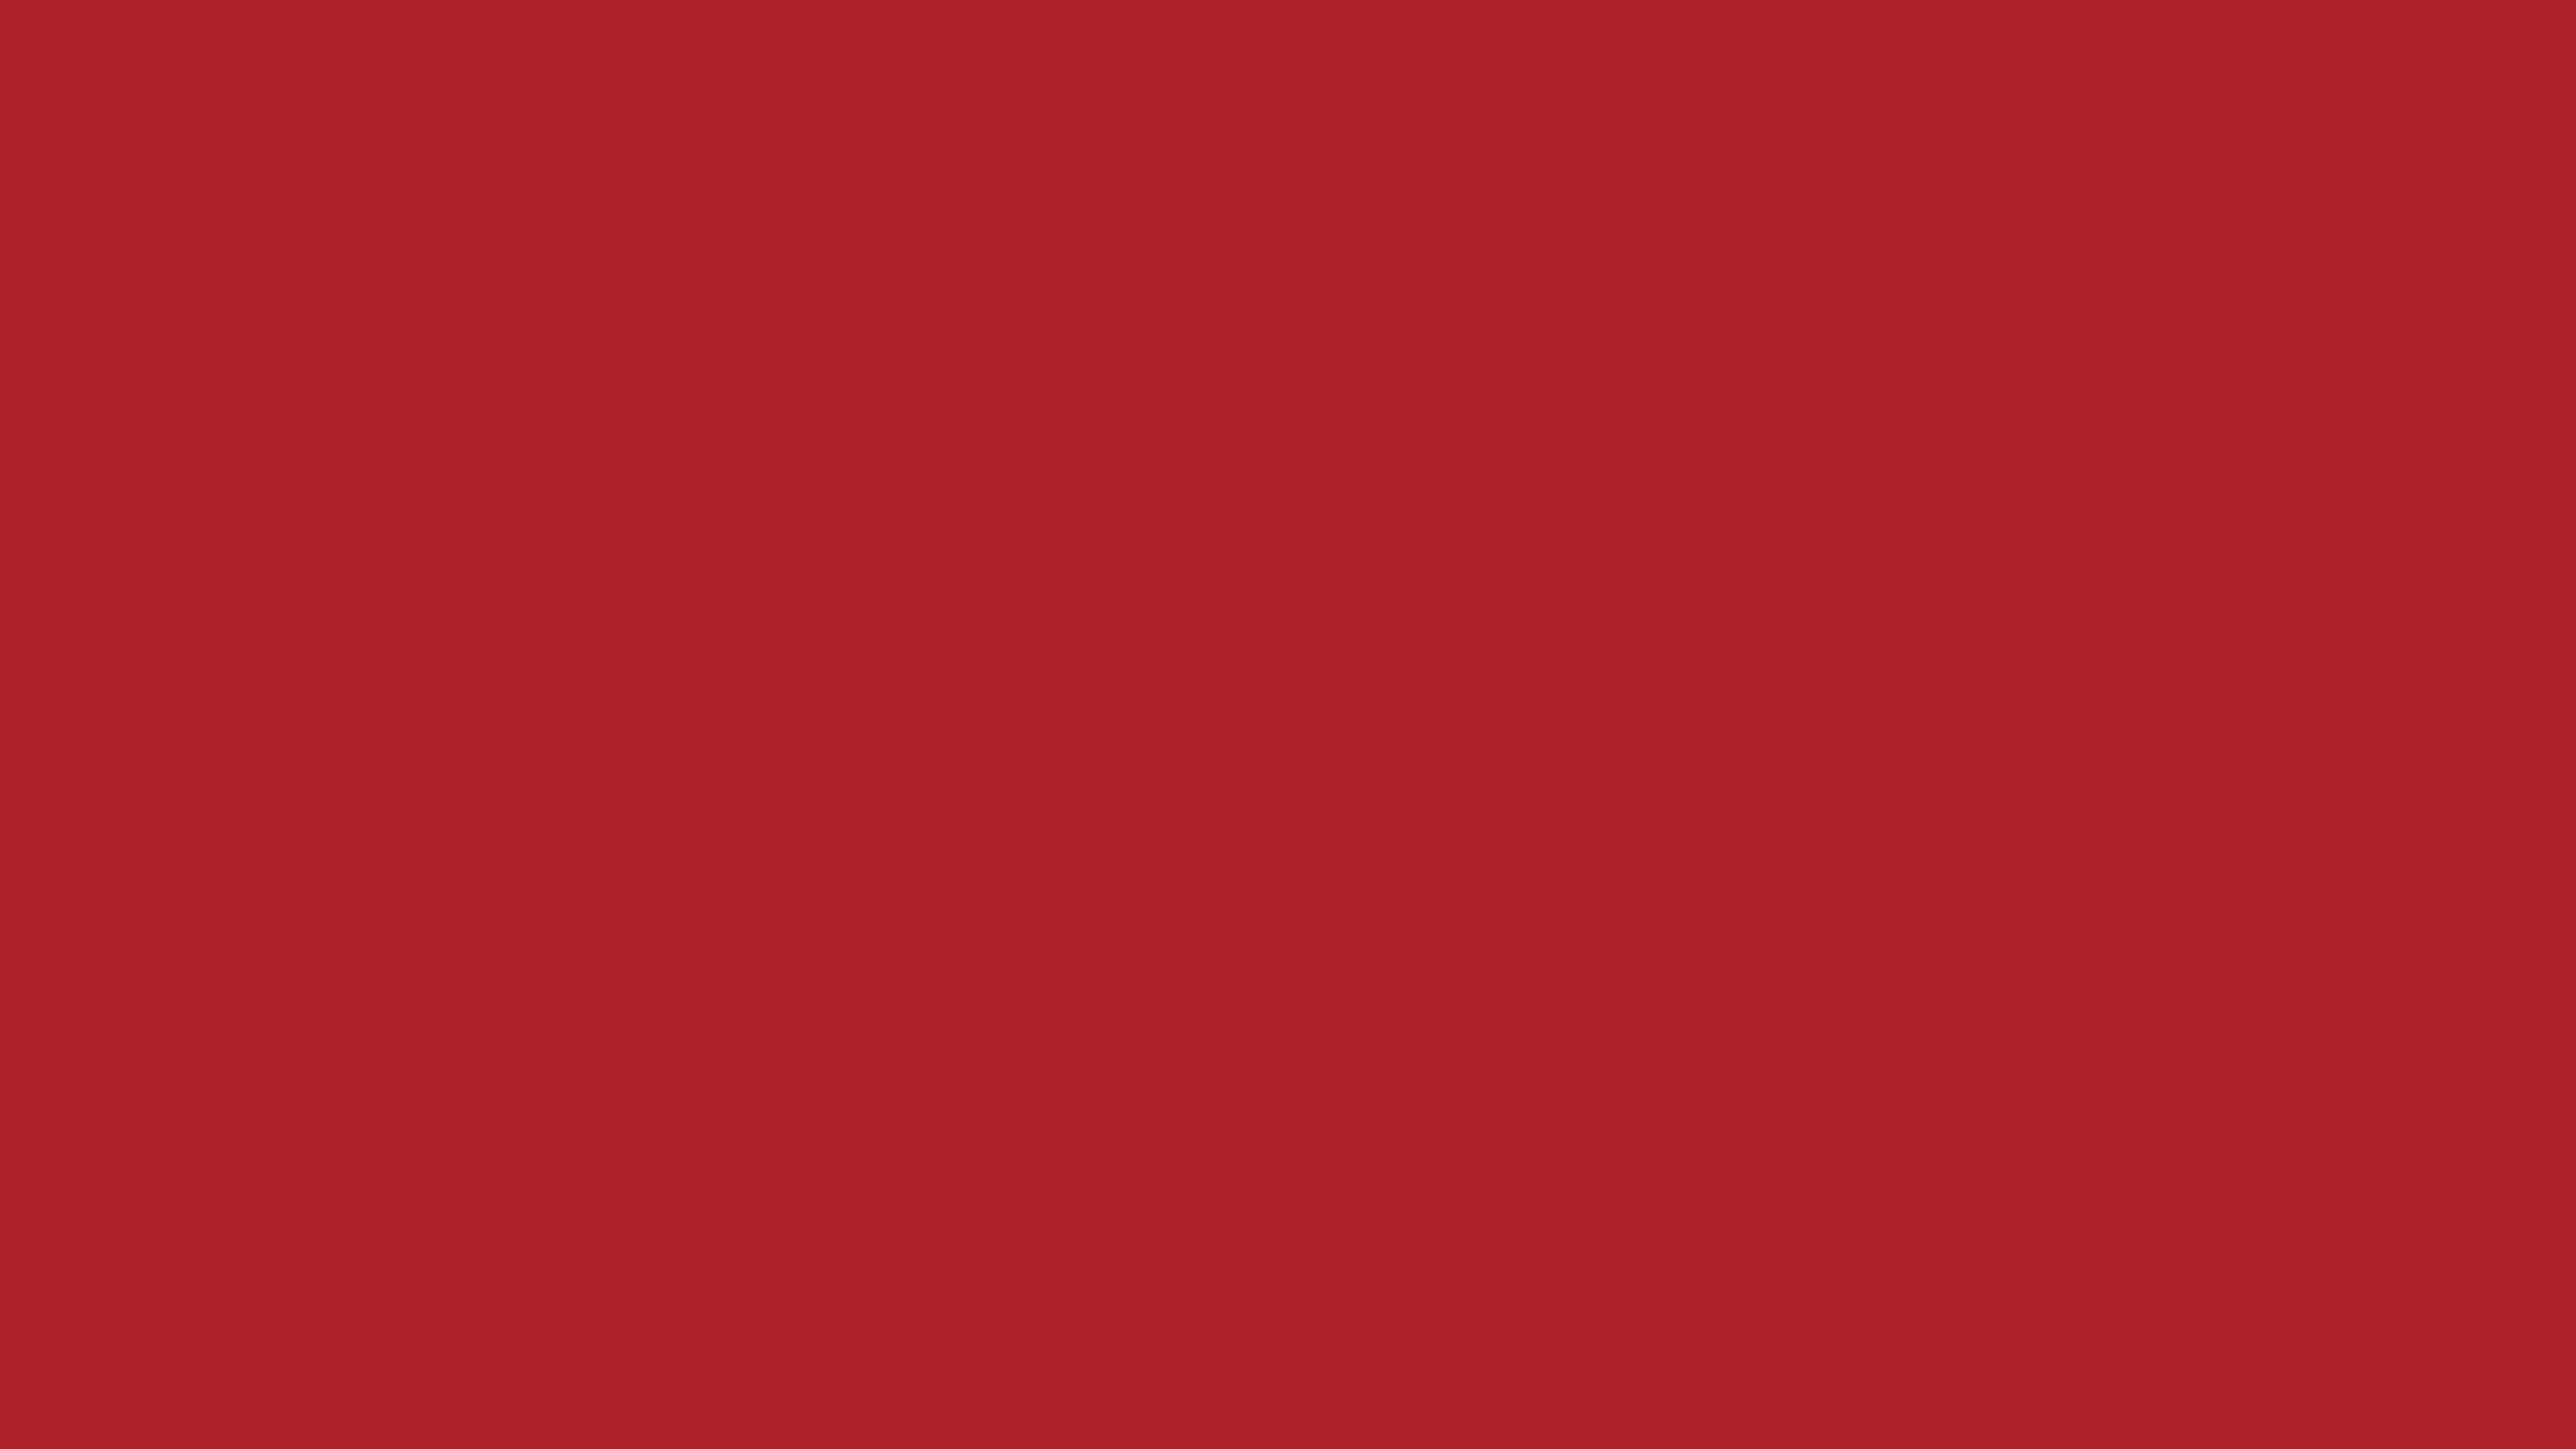 3840x2160 Upsdell Red Solid Color Background